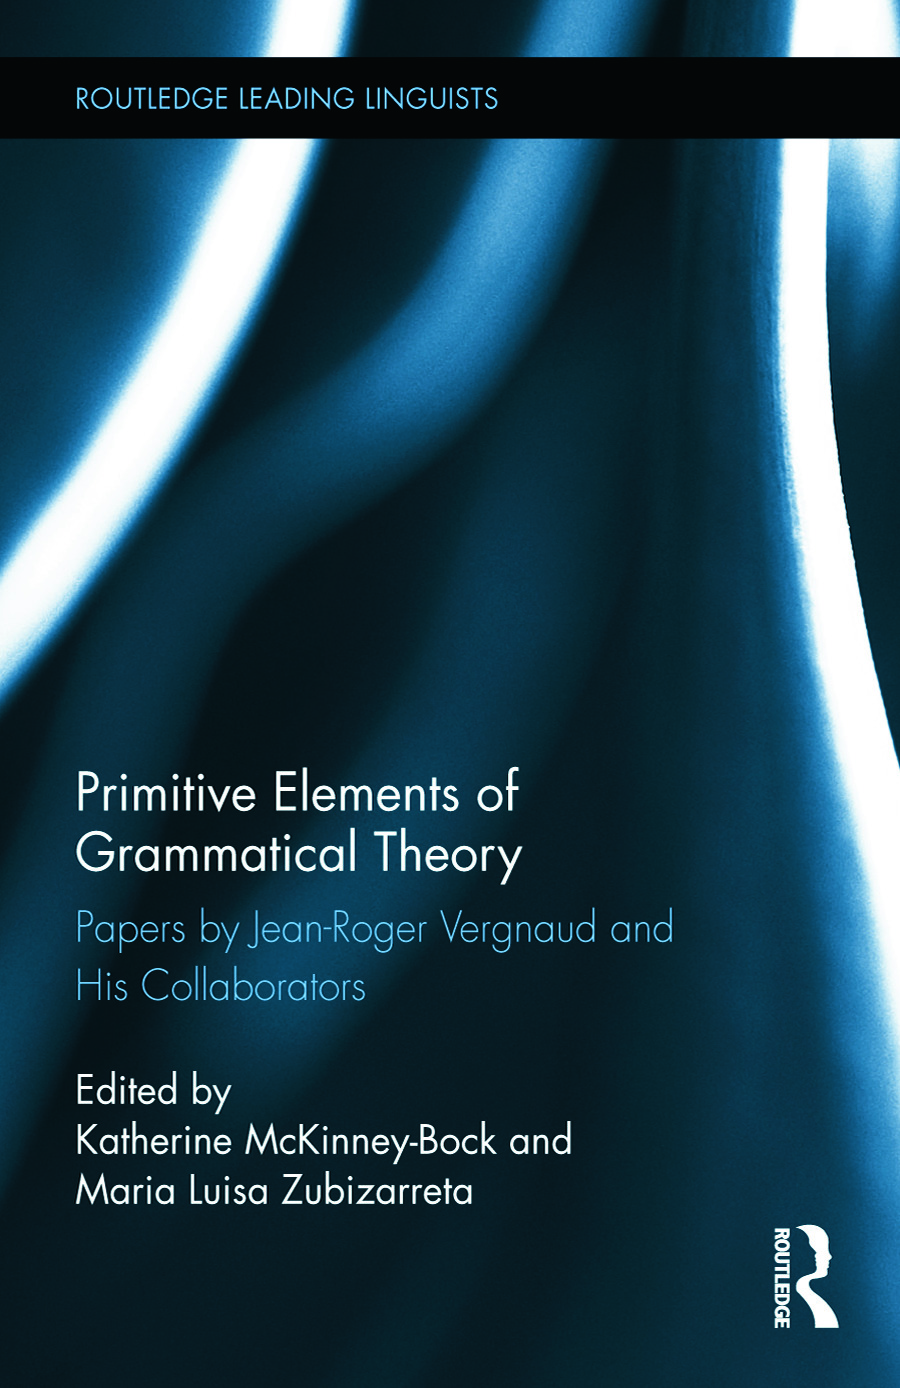 Primitive Elements of Grammatical Theory: Papers by Jean-Roger Vergnaud and His Collaborators book cover